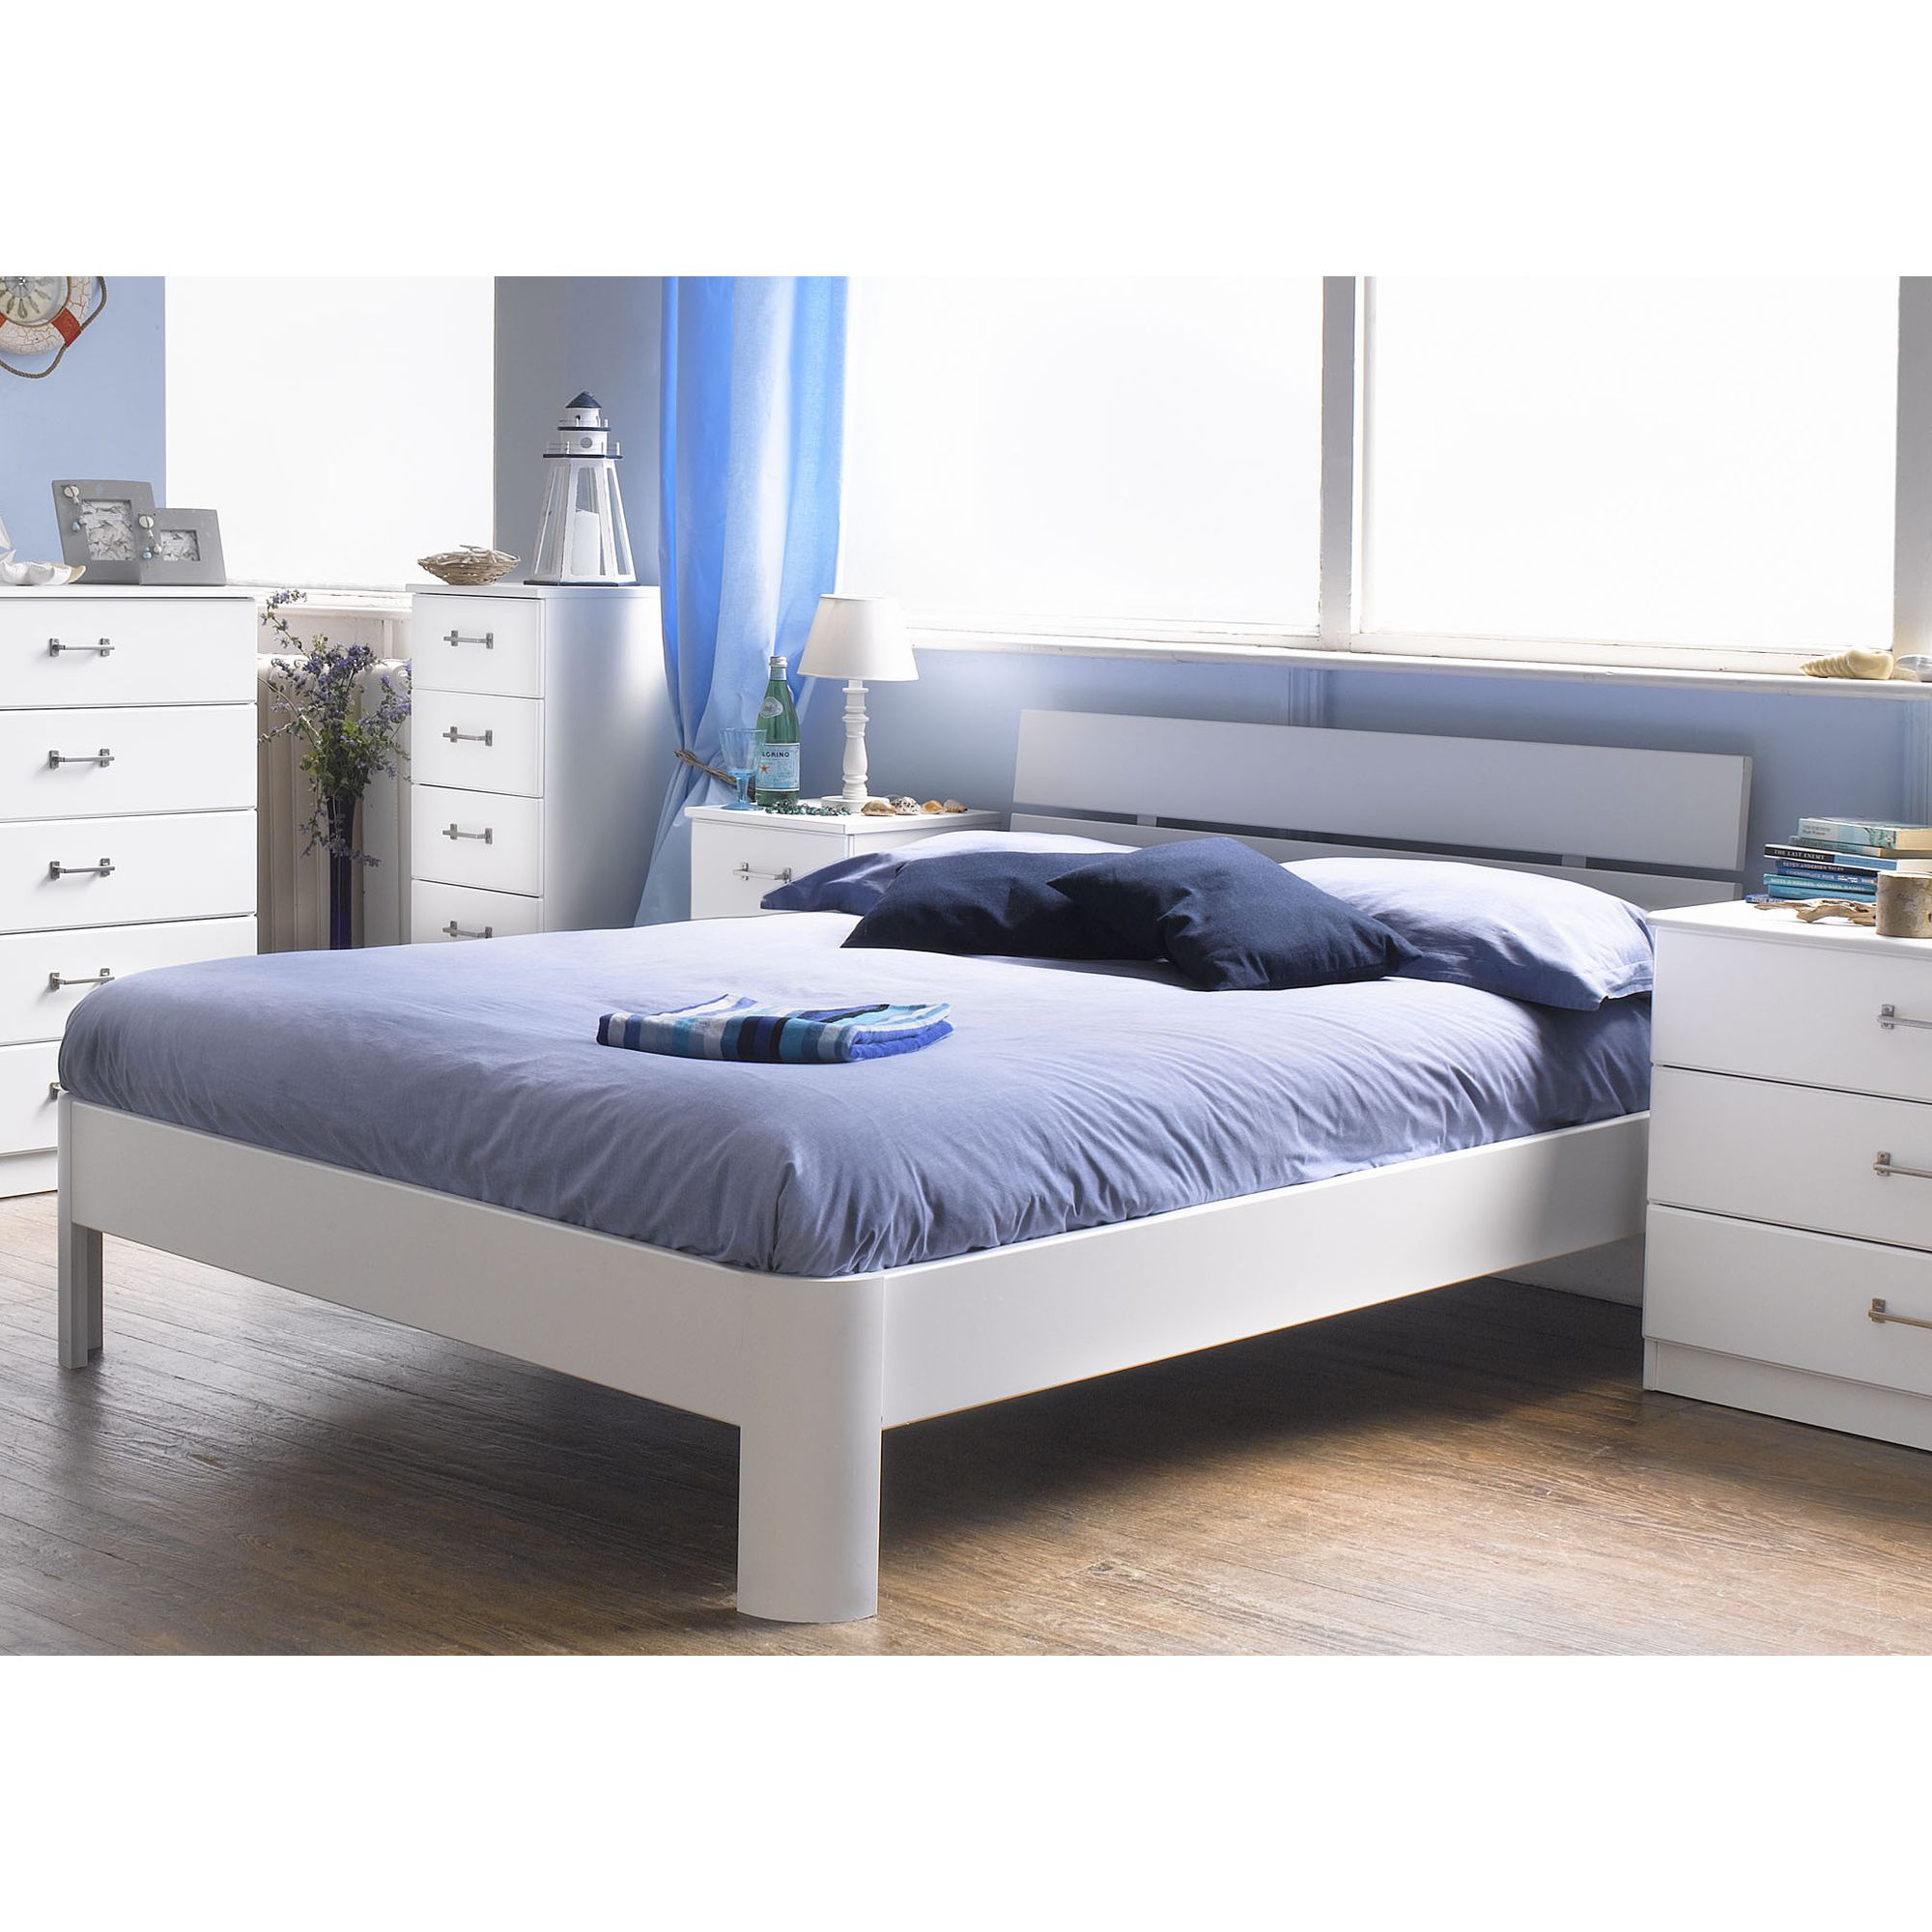 Alto Furniture Visualise Century Bed Frame - King at Tesco Direct